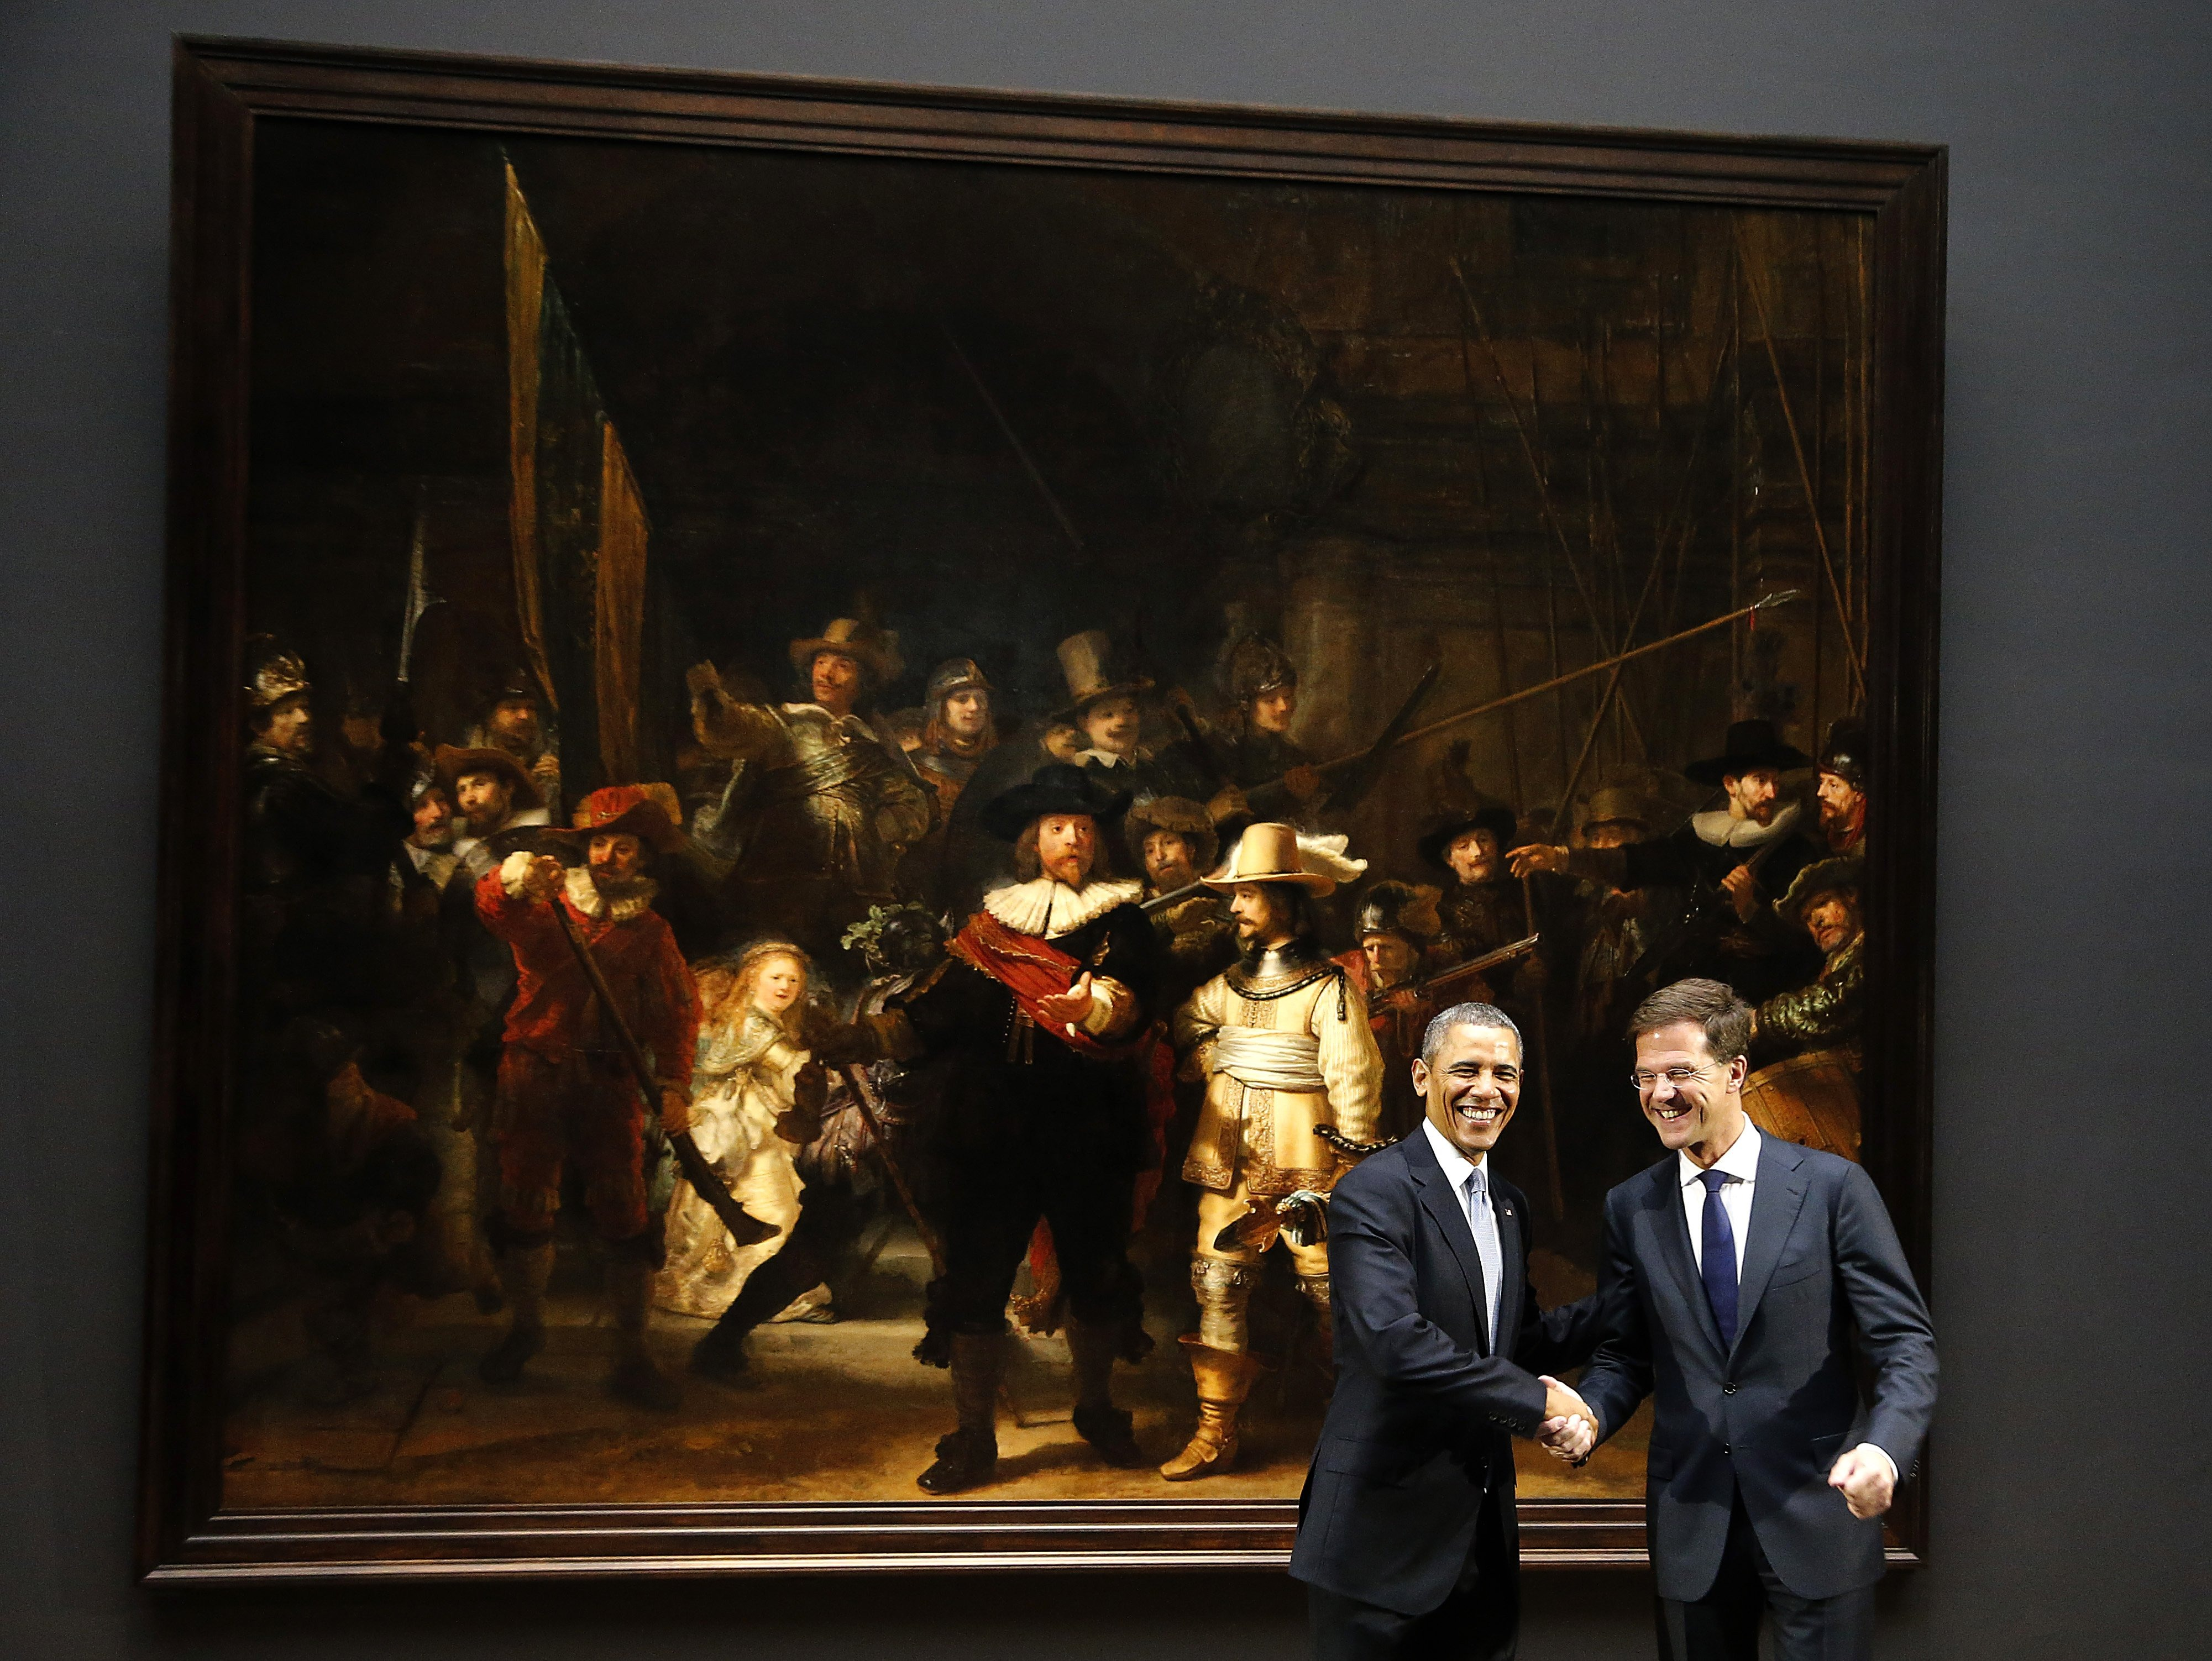 U.S. President Barack Obama, left, shakes hands with Dutch Prime Minister Mark Rutte, right, in front of  Dutch master Rembrandt's The Night Watch painting during a visit to the Rijksmuseum in Amsterdam, Netherlands, on Monday, March 24, 2014.